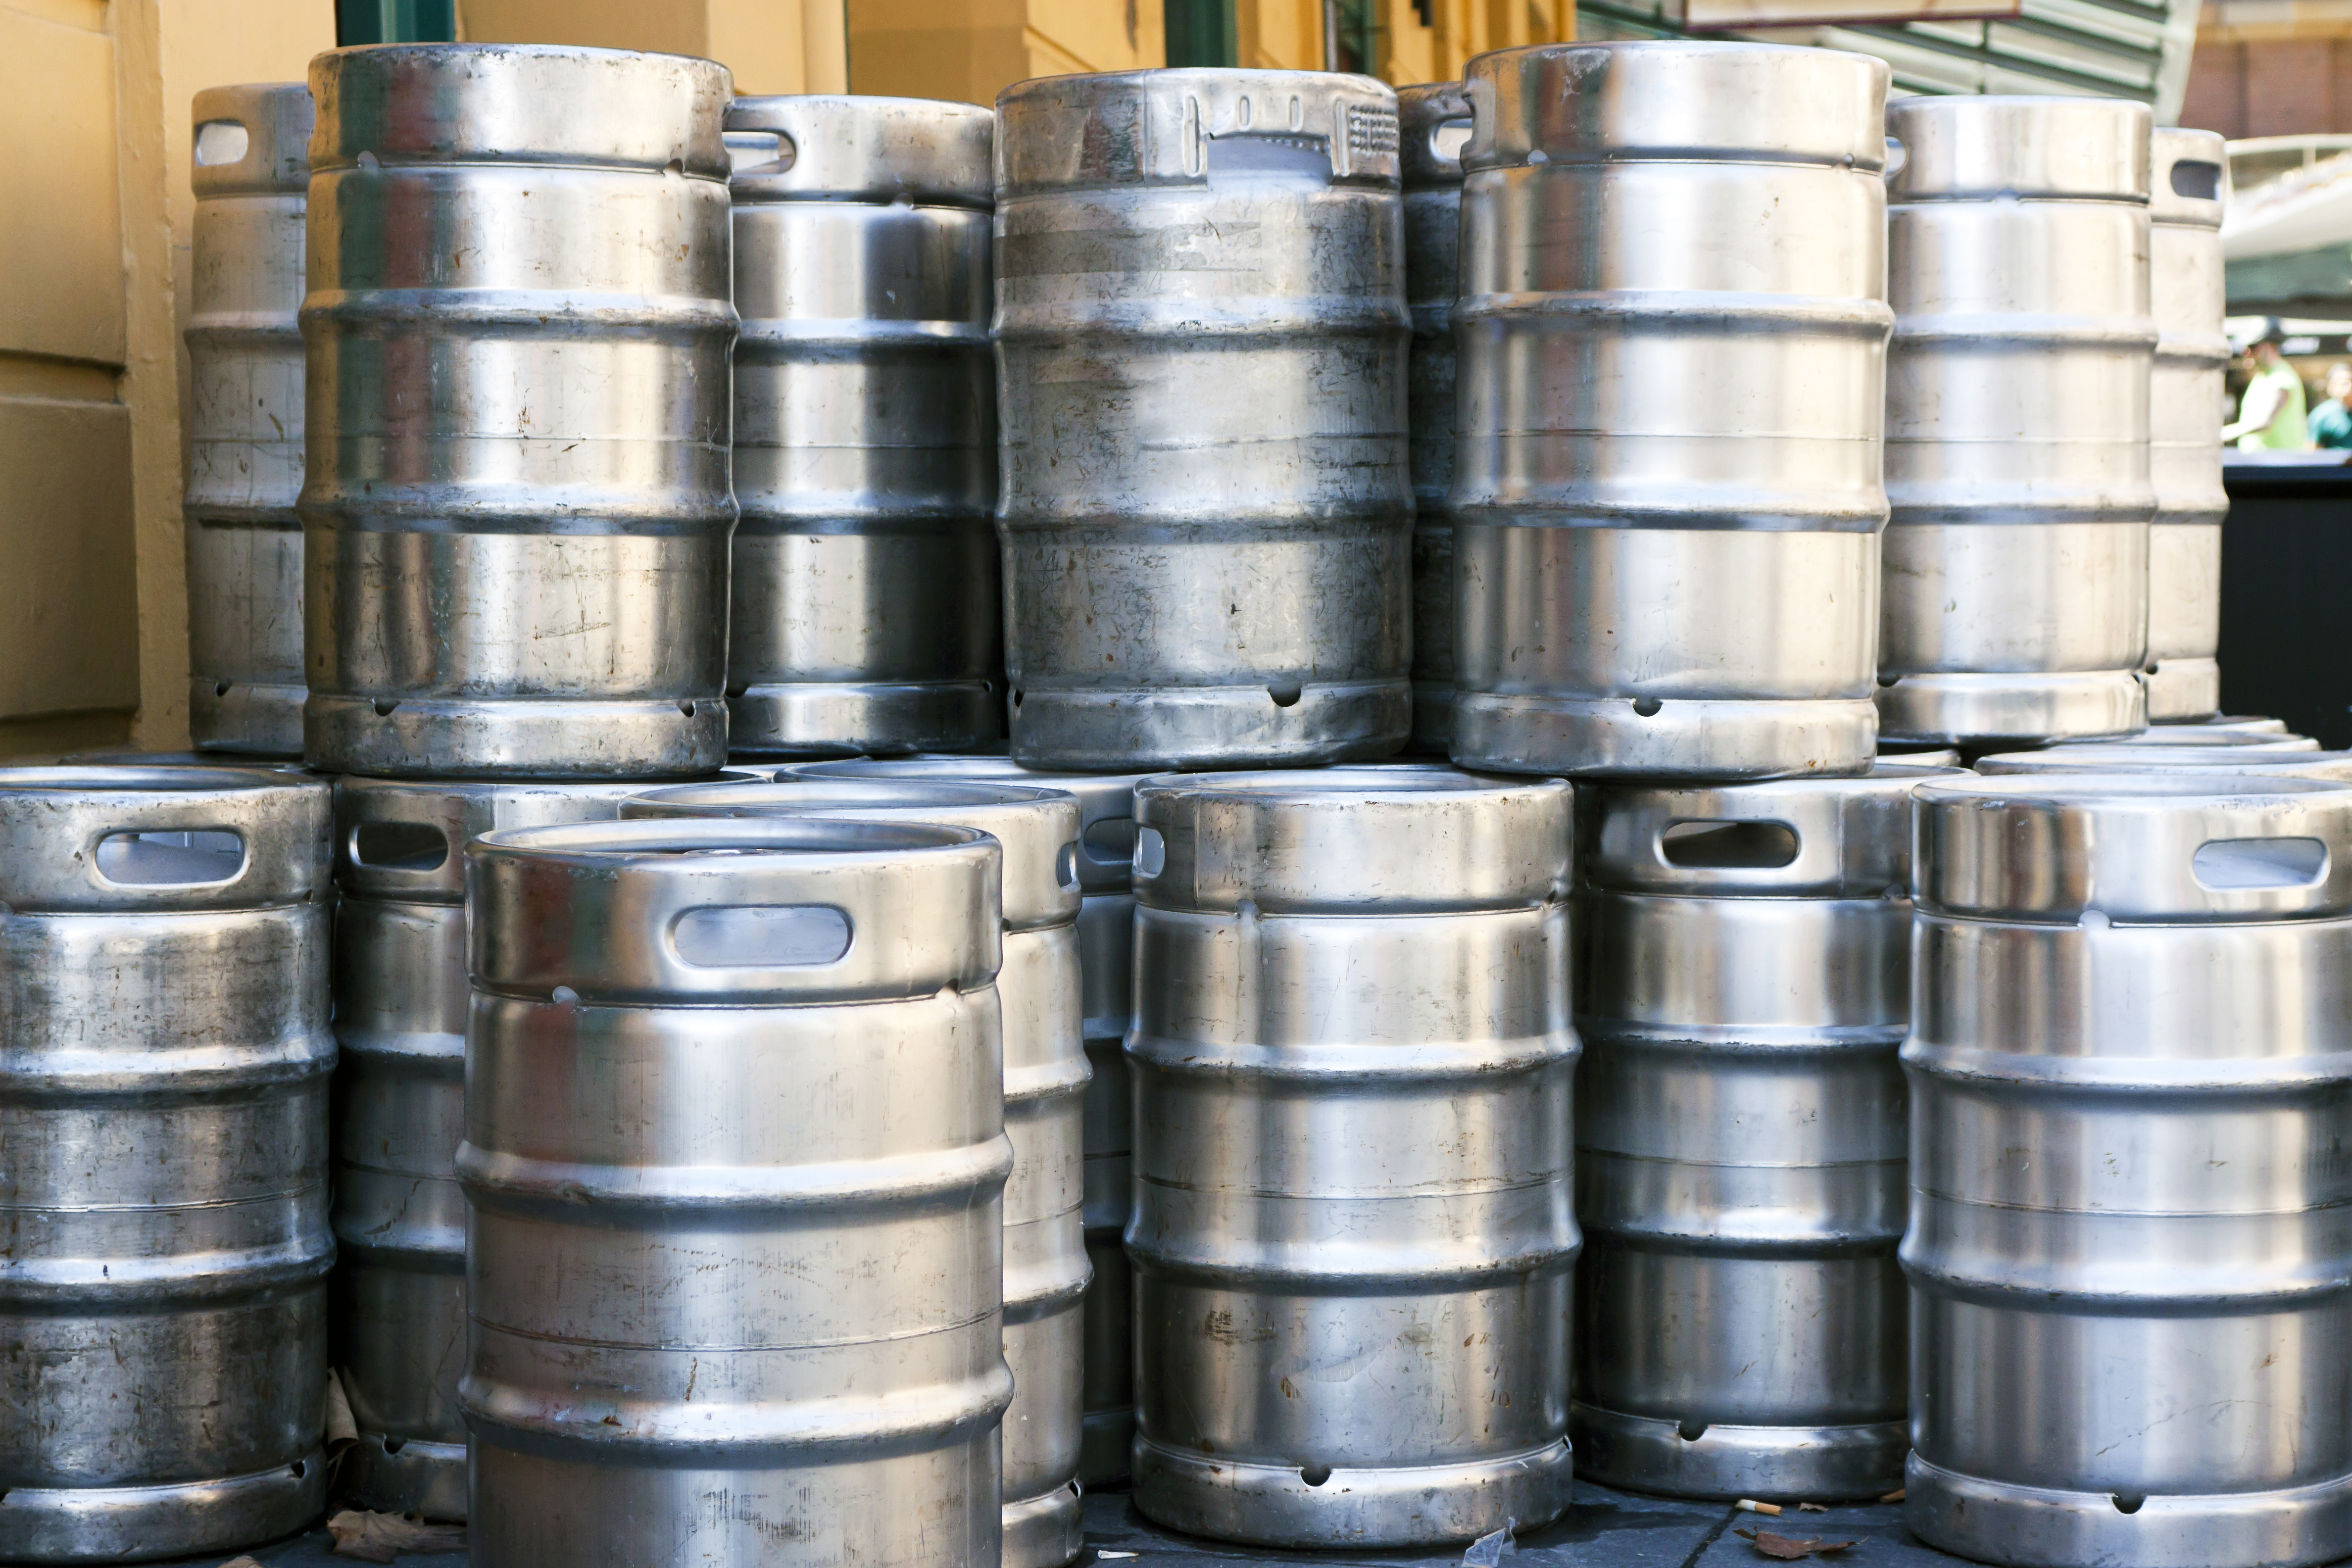 How To Empty Beer Kegs Without A Tap Leaftv